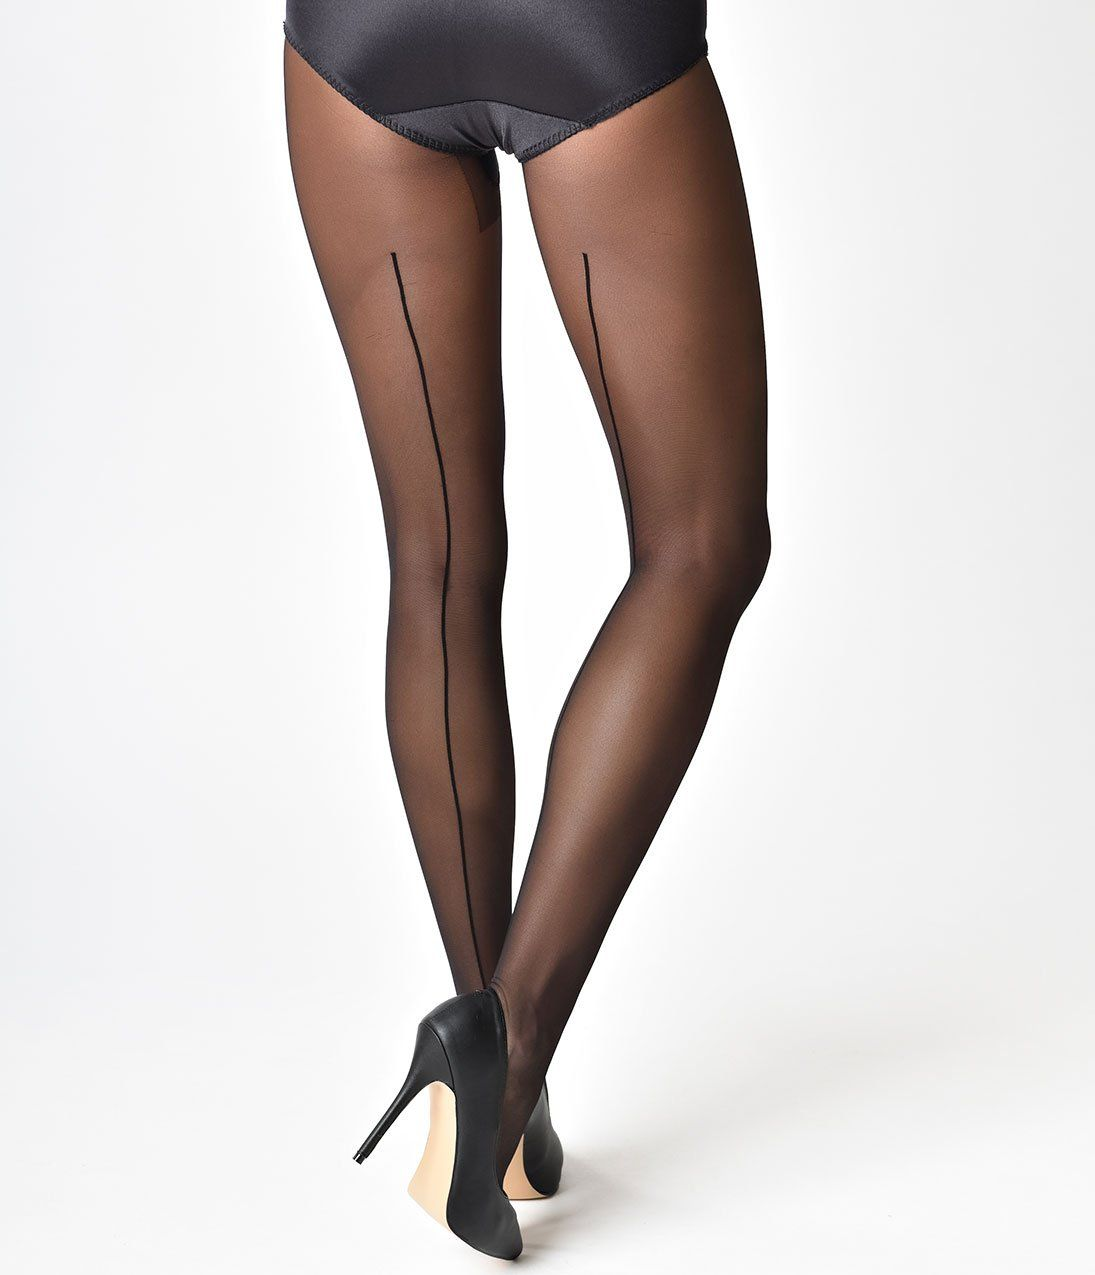 452bf552694 What Katie Did Retro Style Black Seamed Pantyhose